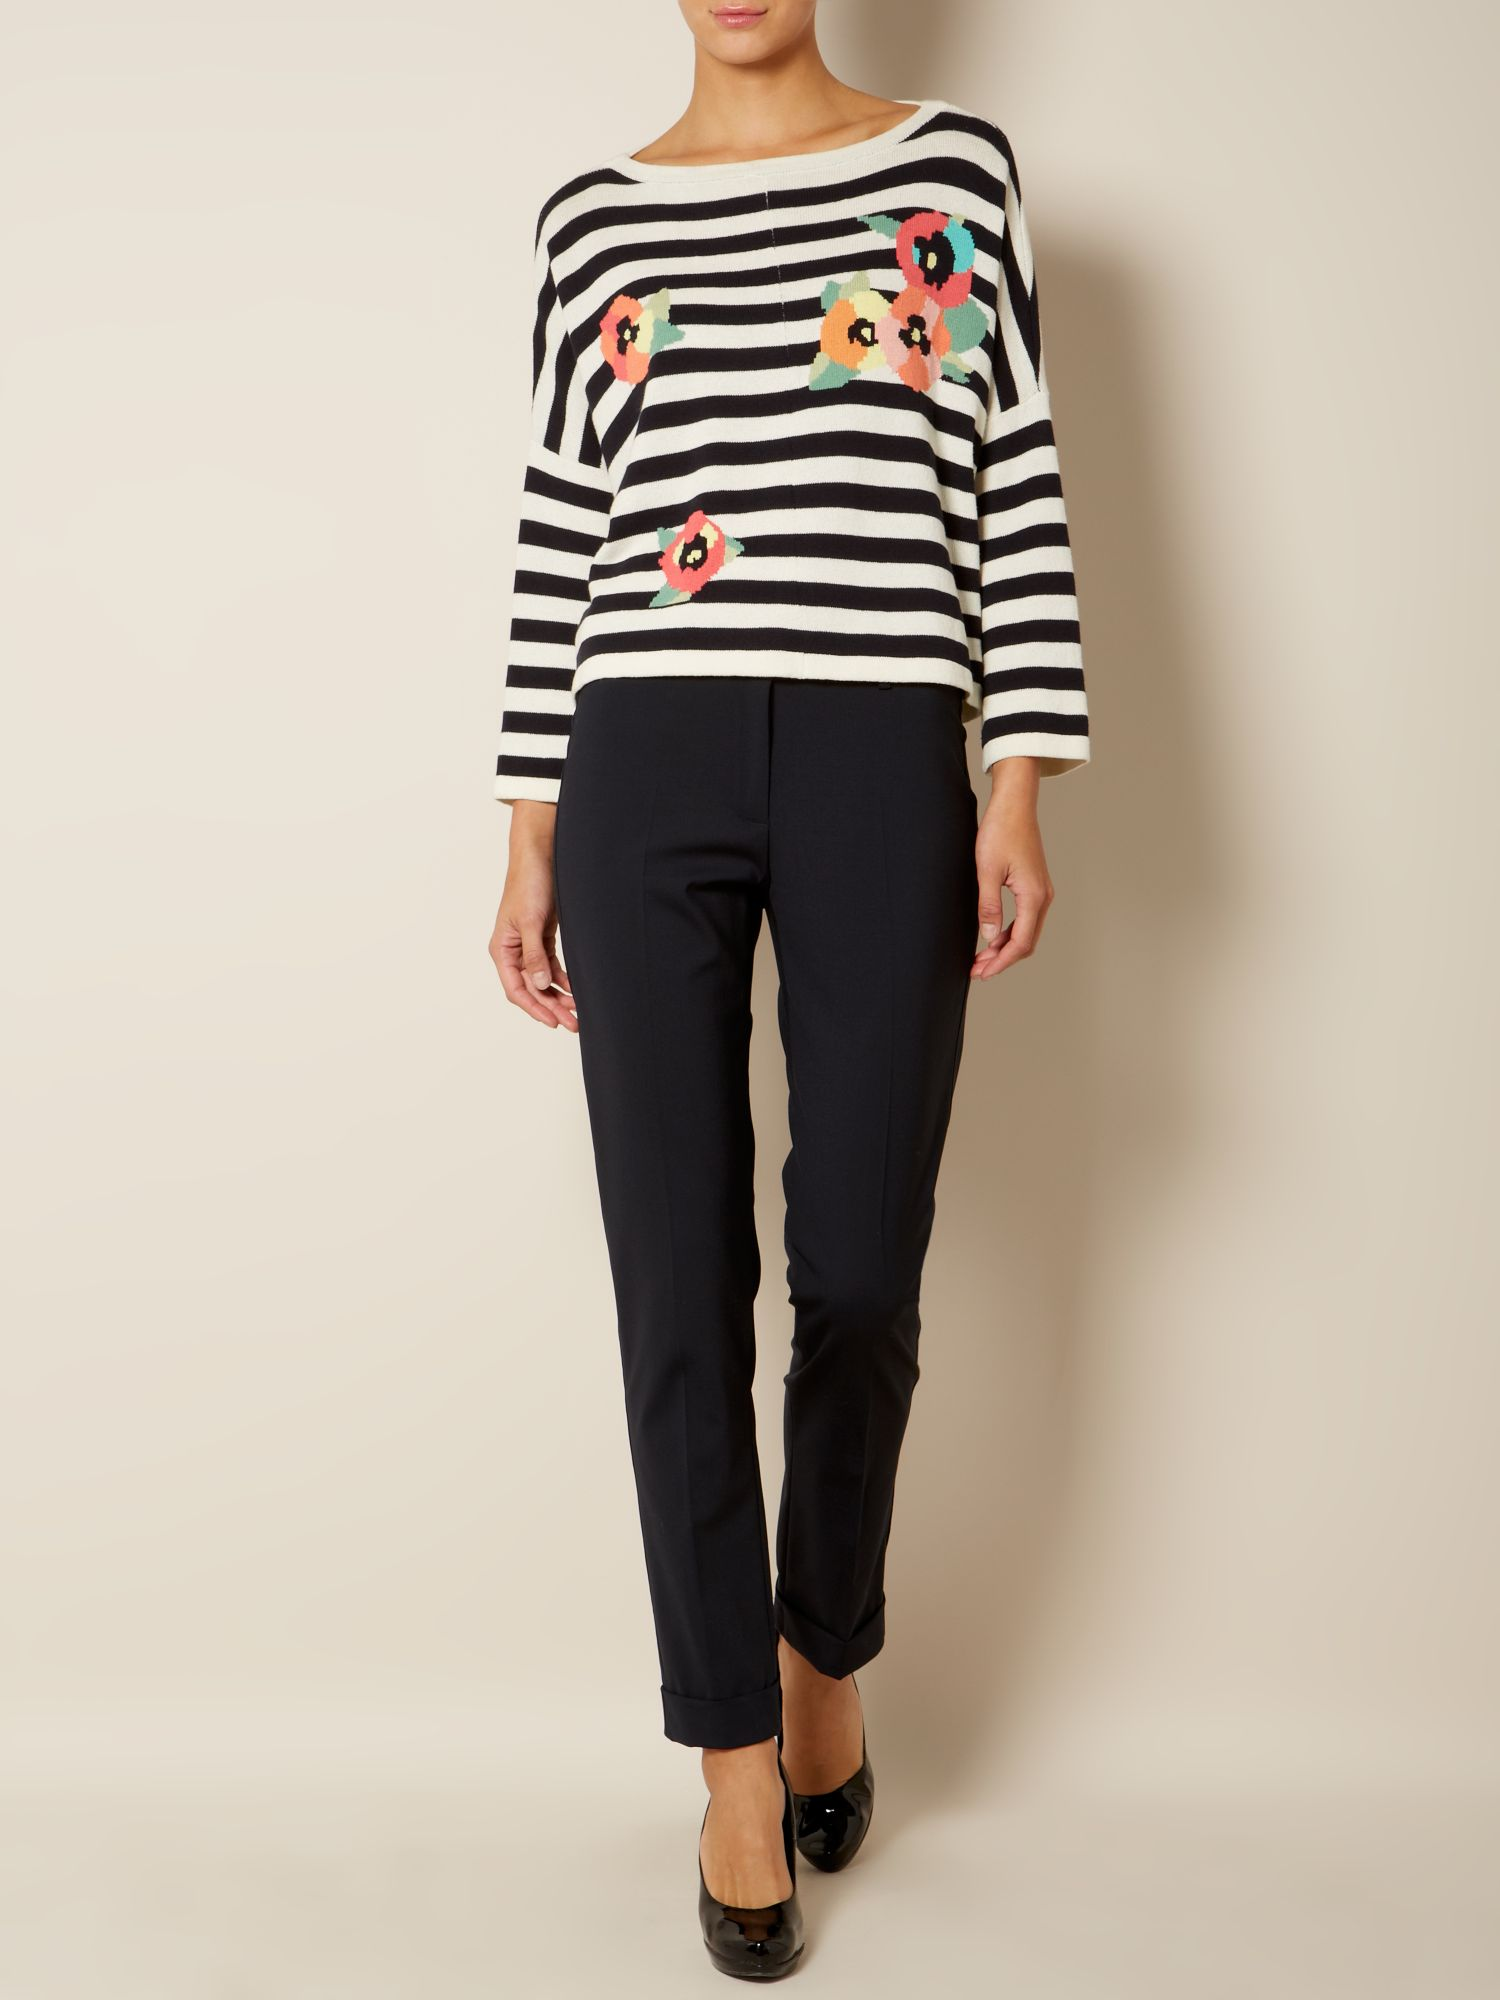 Nespola floral striped top with floral detail